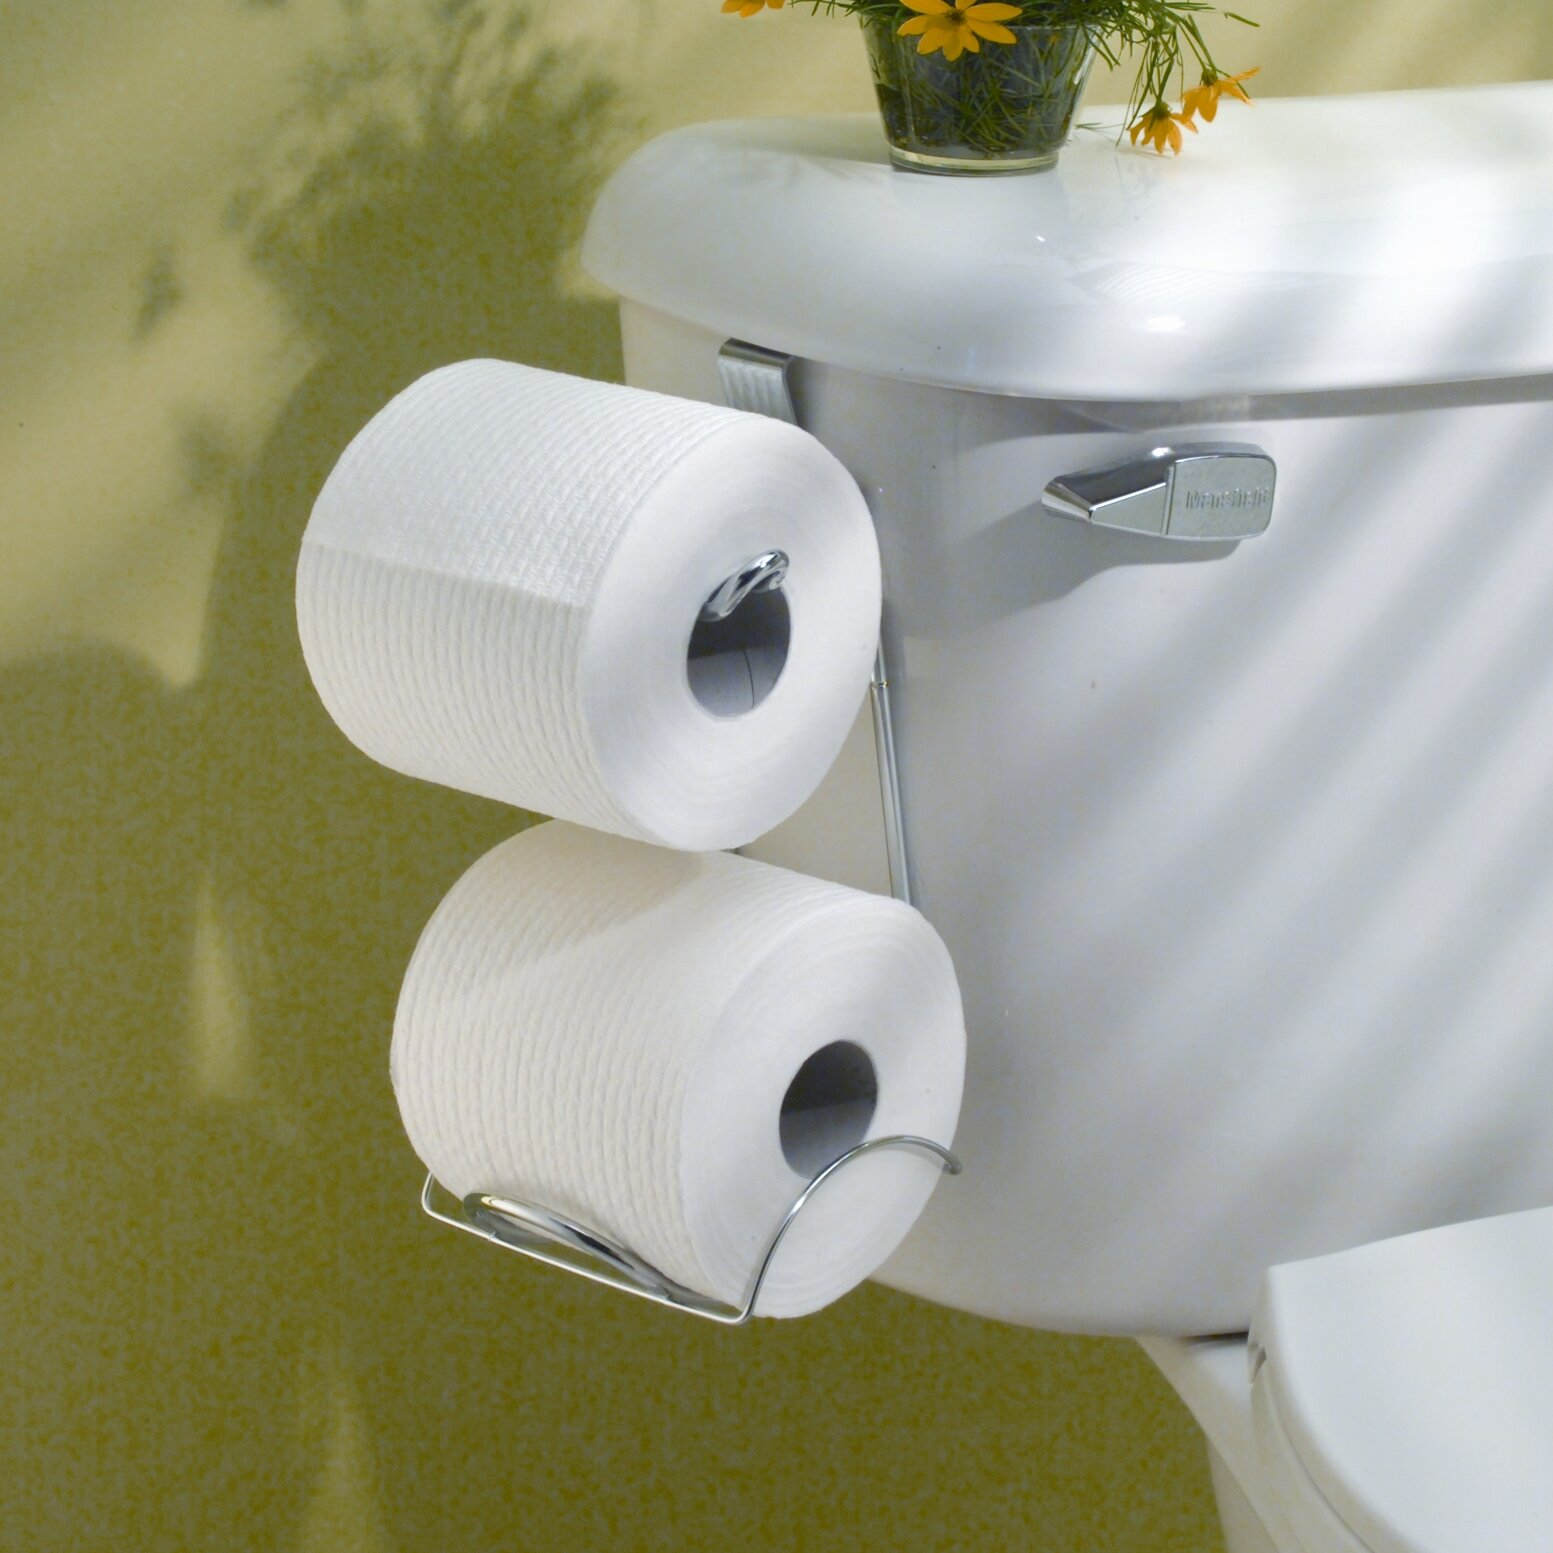 Interdesign classico over the toilet toiletpaper holder Kids toilet paper holder